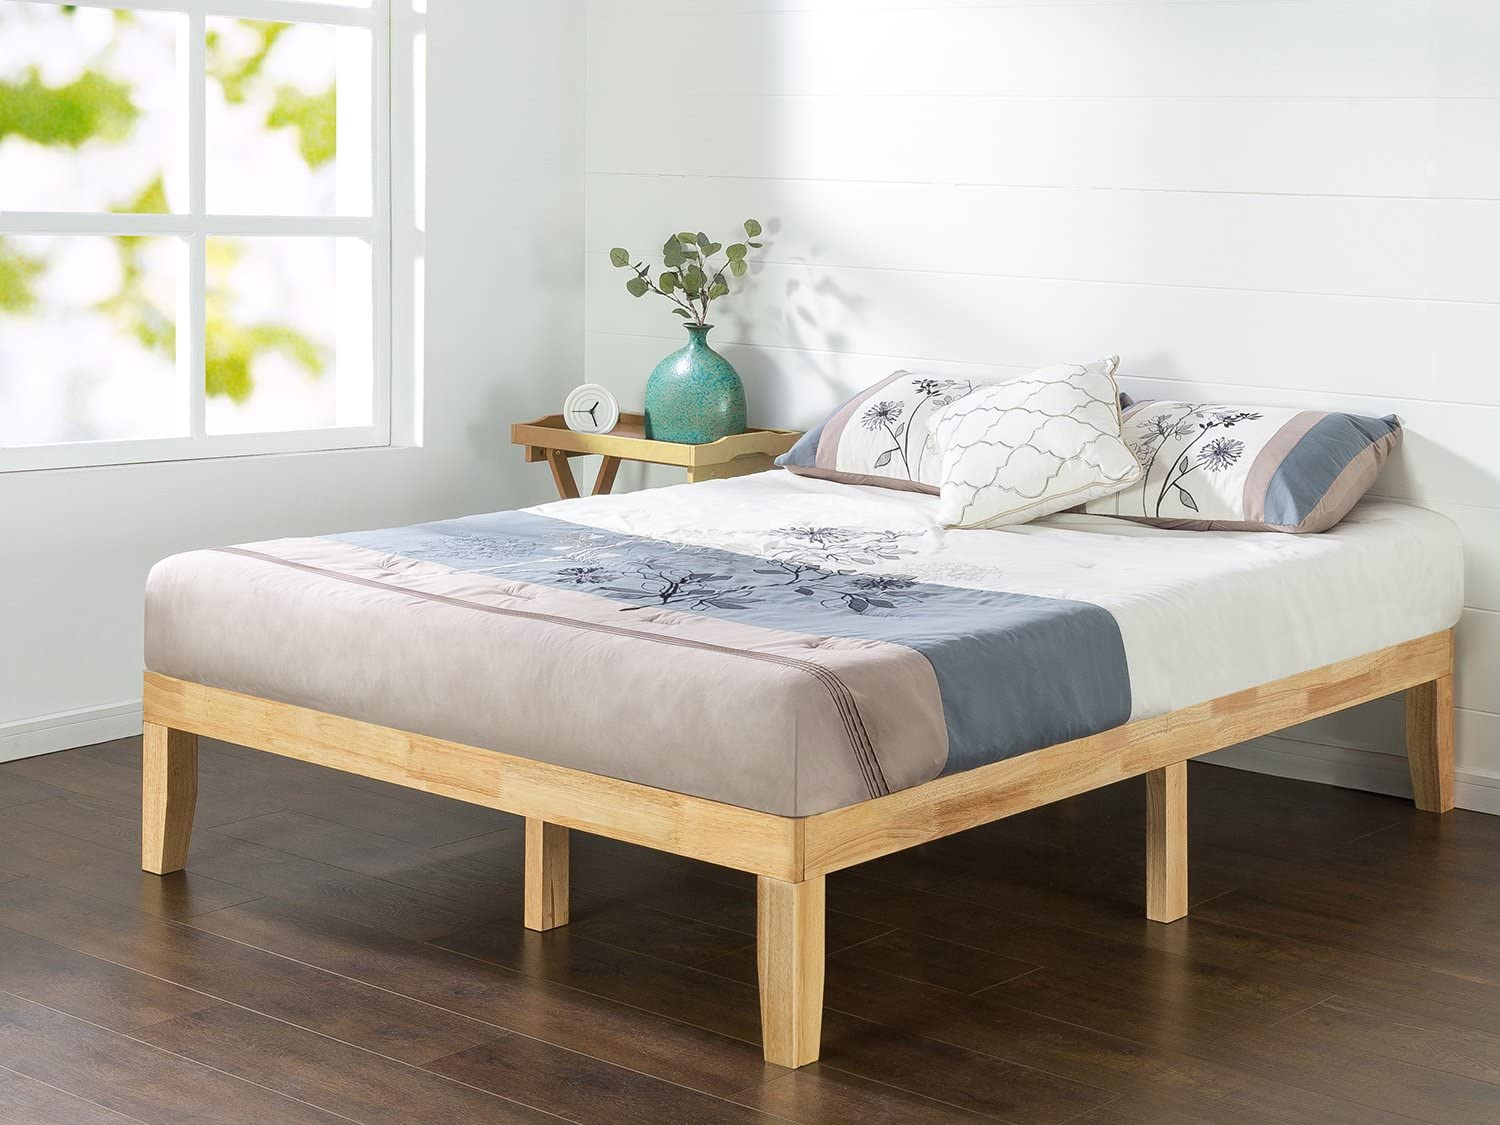 Zinus Moiz 14 Inch Wood Platform Bed No Box Spring Needed Wood Slat Support Natural Finish, Twin